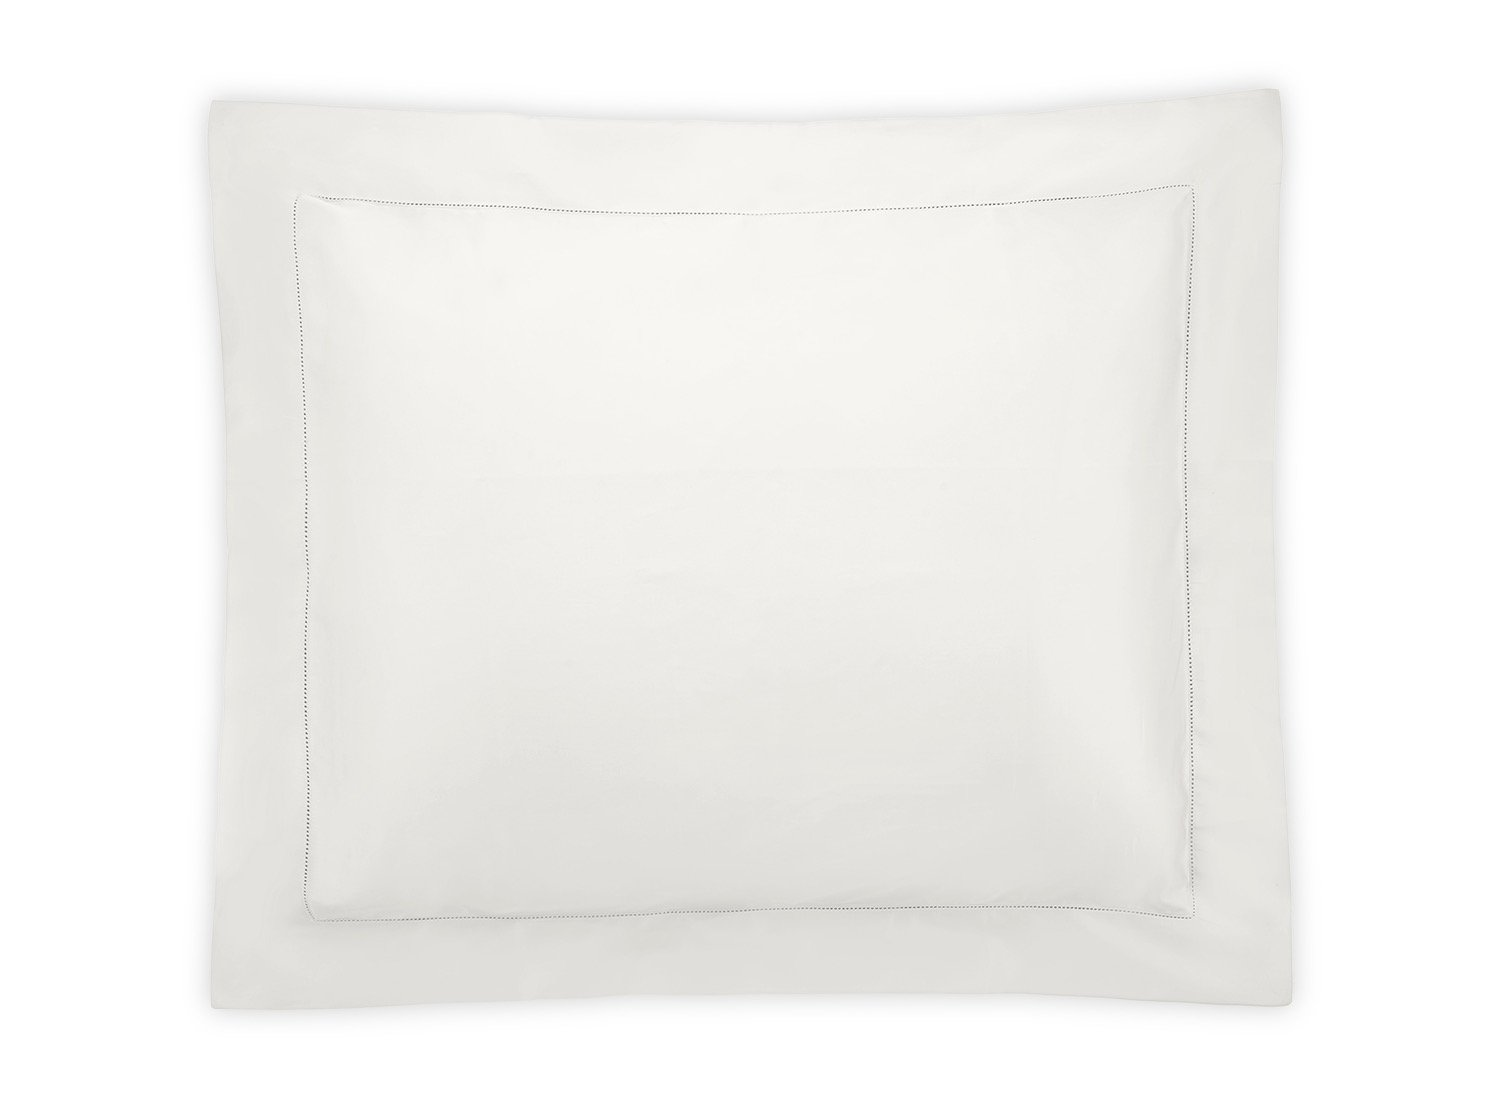 Nocturne Hemstitch Bone Sham | Matouk Sateen Bedding